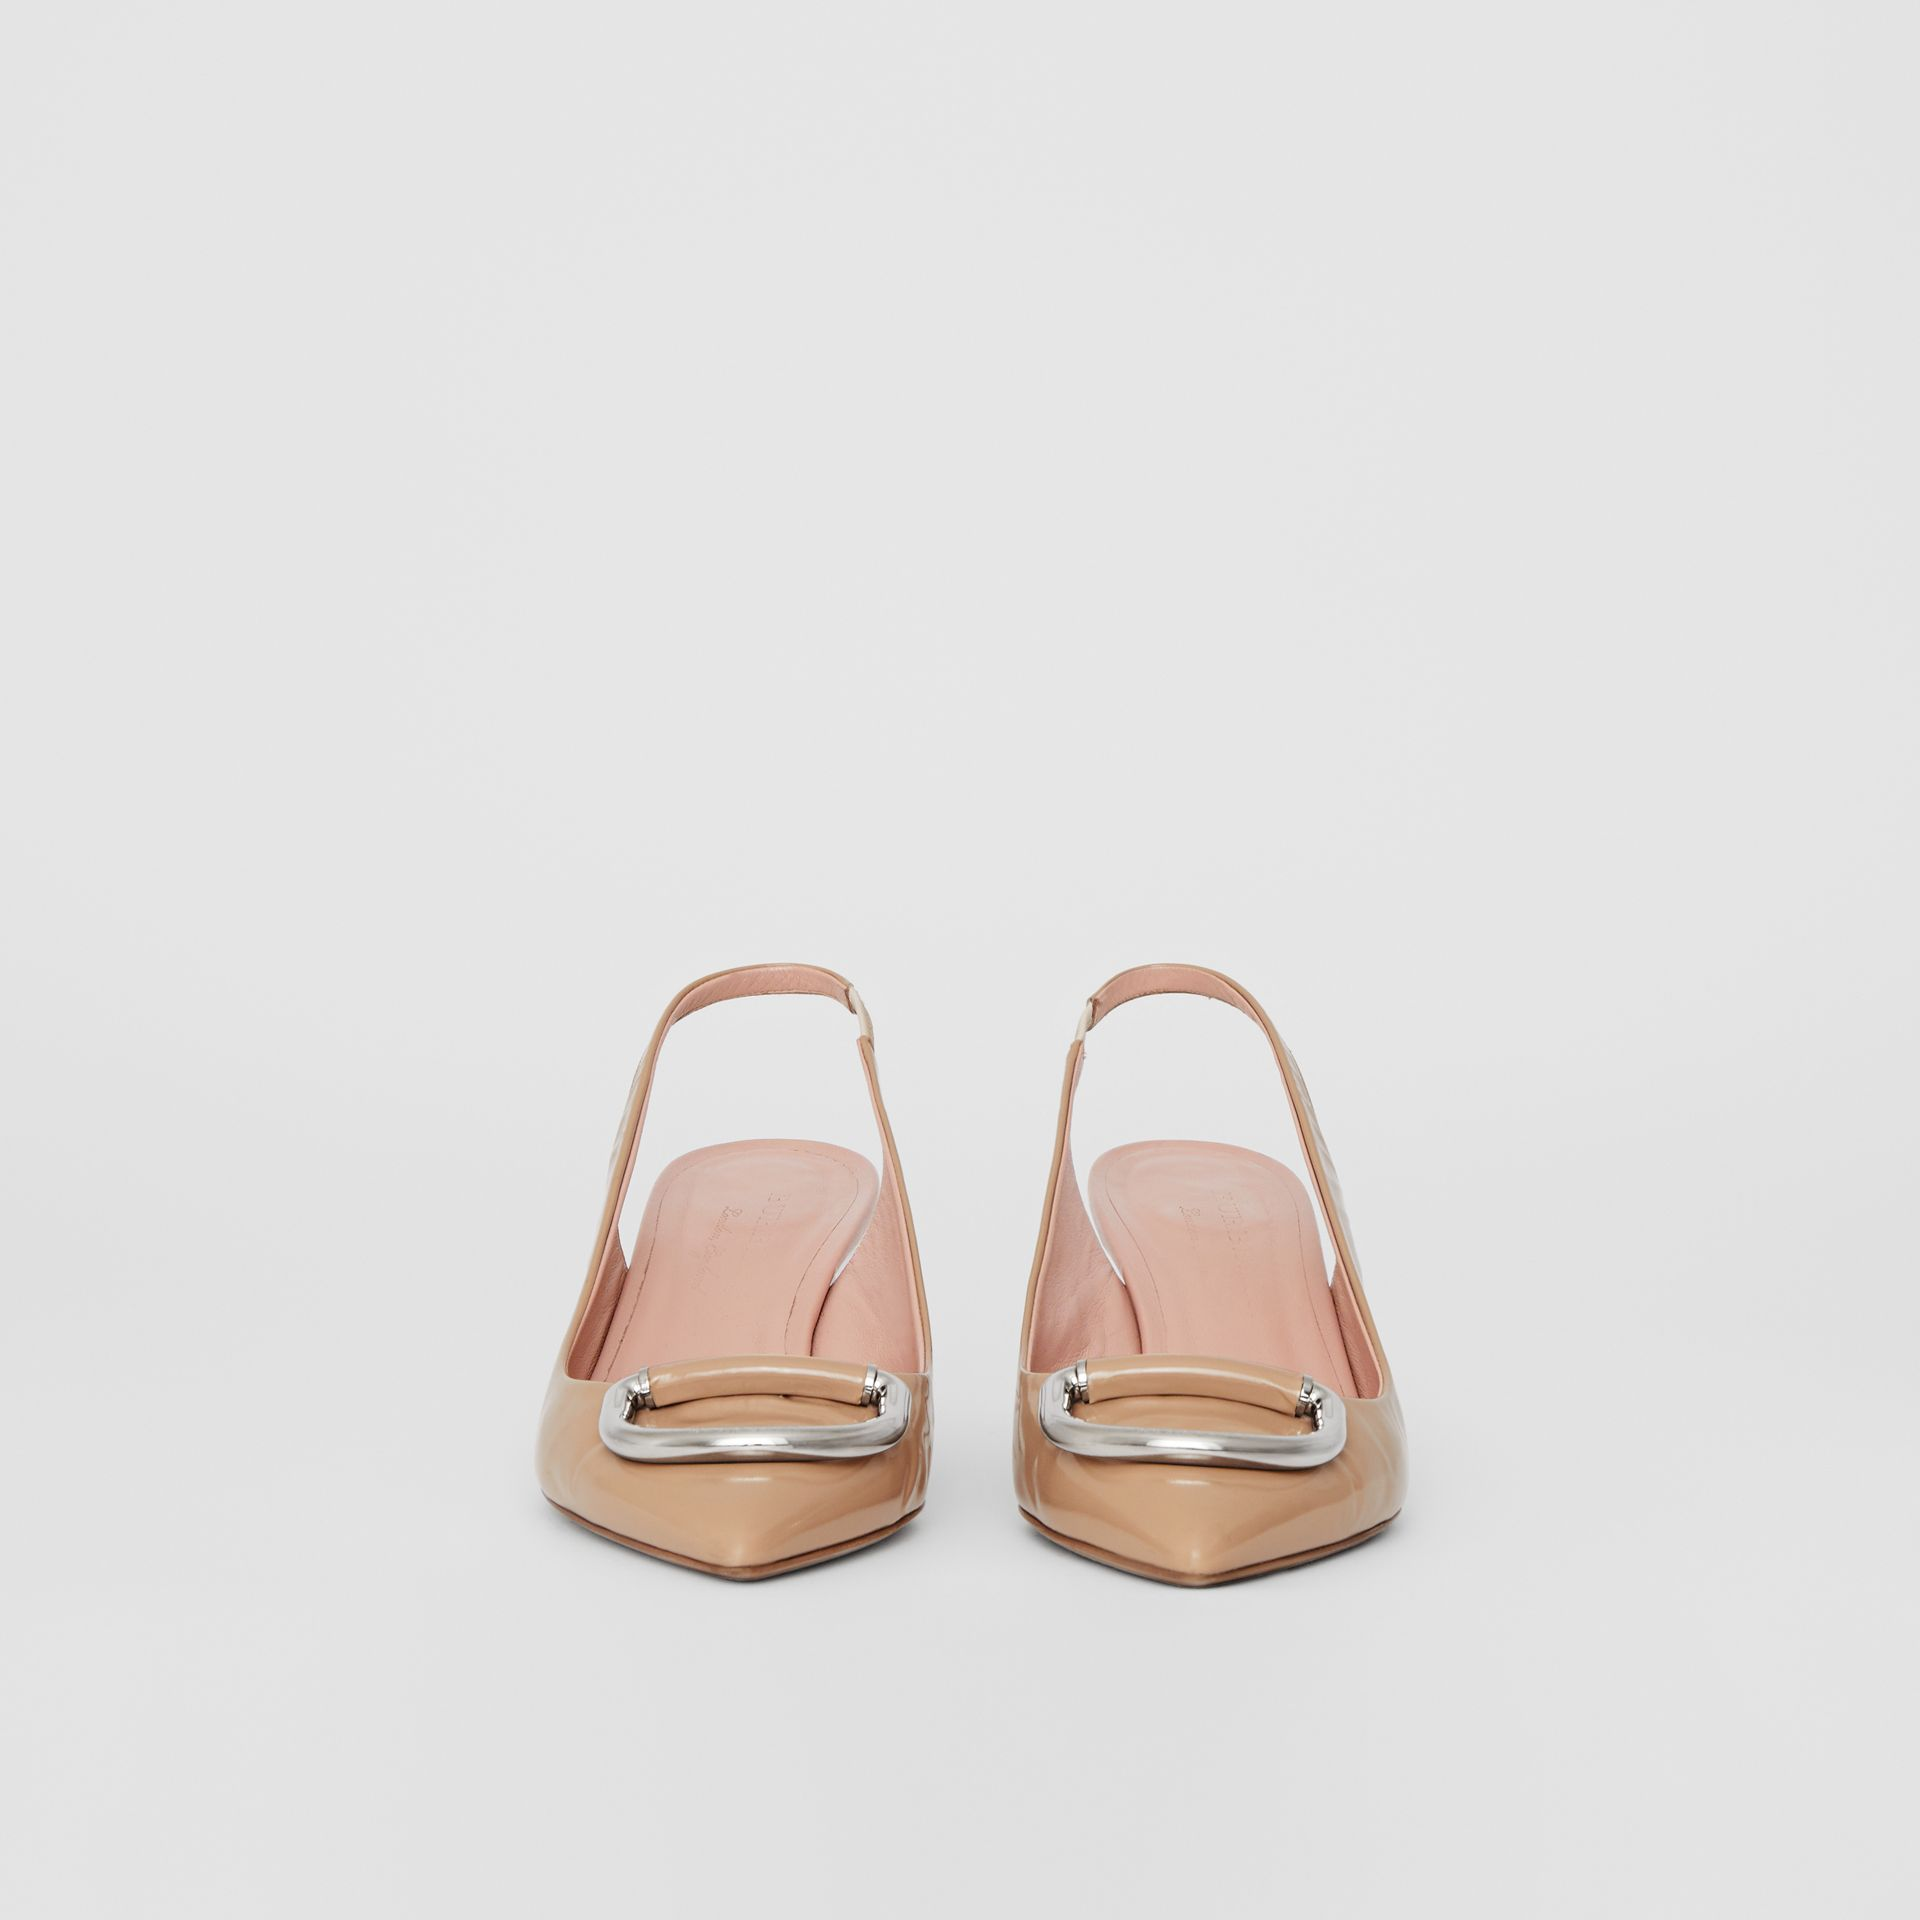 The Leather D-ring Slingback Pump in Nude Blush - Women | Burberry - gallery image 3